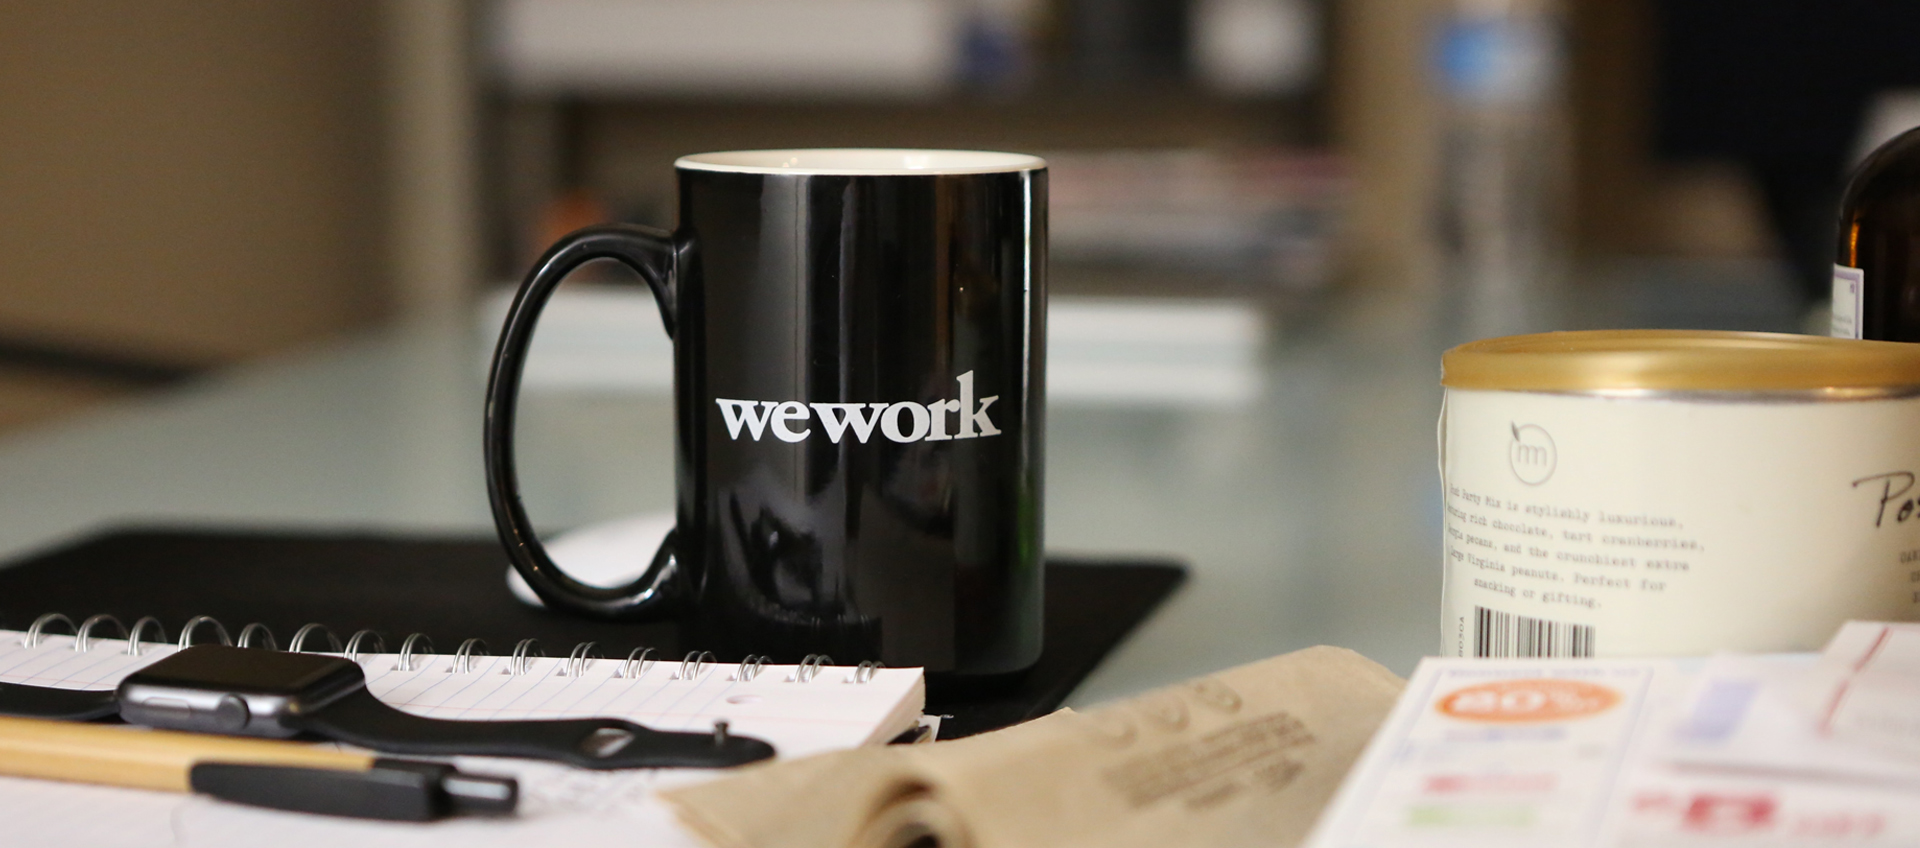 WeWork is teetering after its proposed IPO was abandoned.